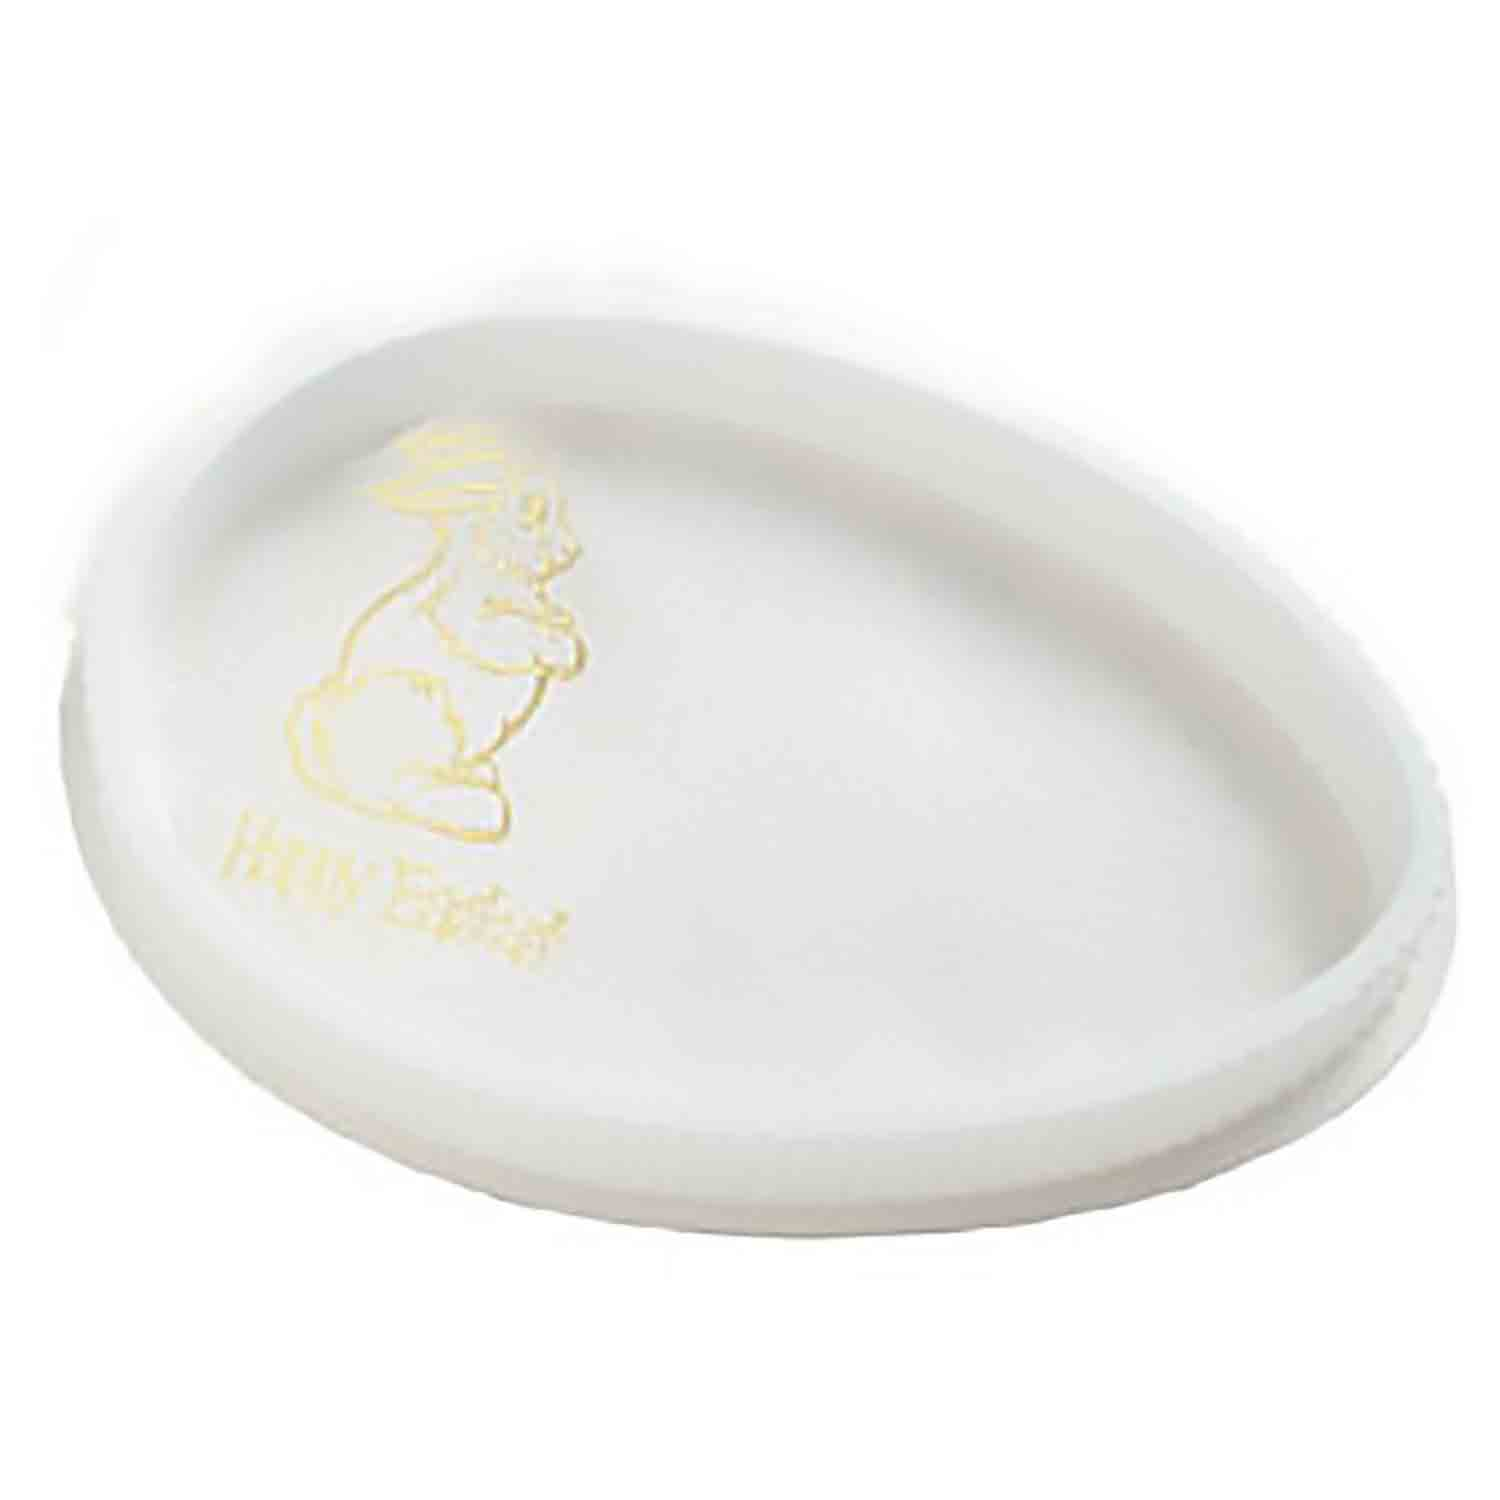 1 lb. White Egg Shaped Candy Box with Clear Lid